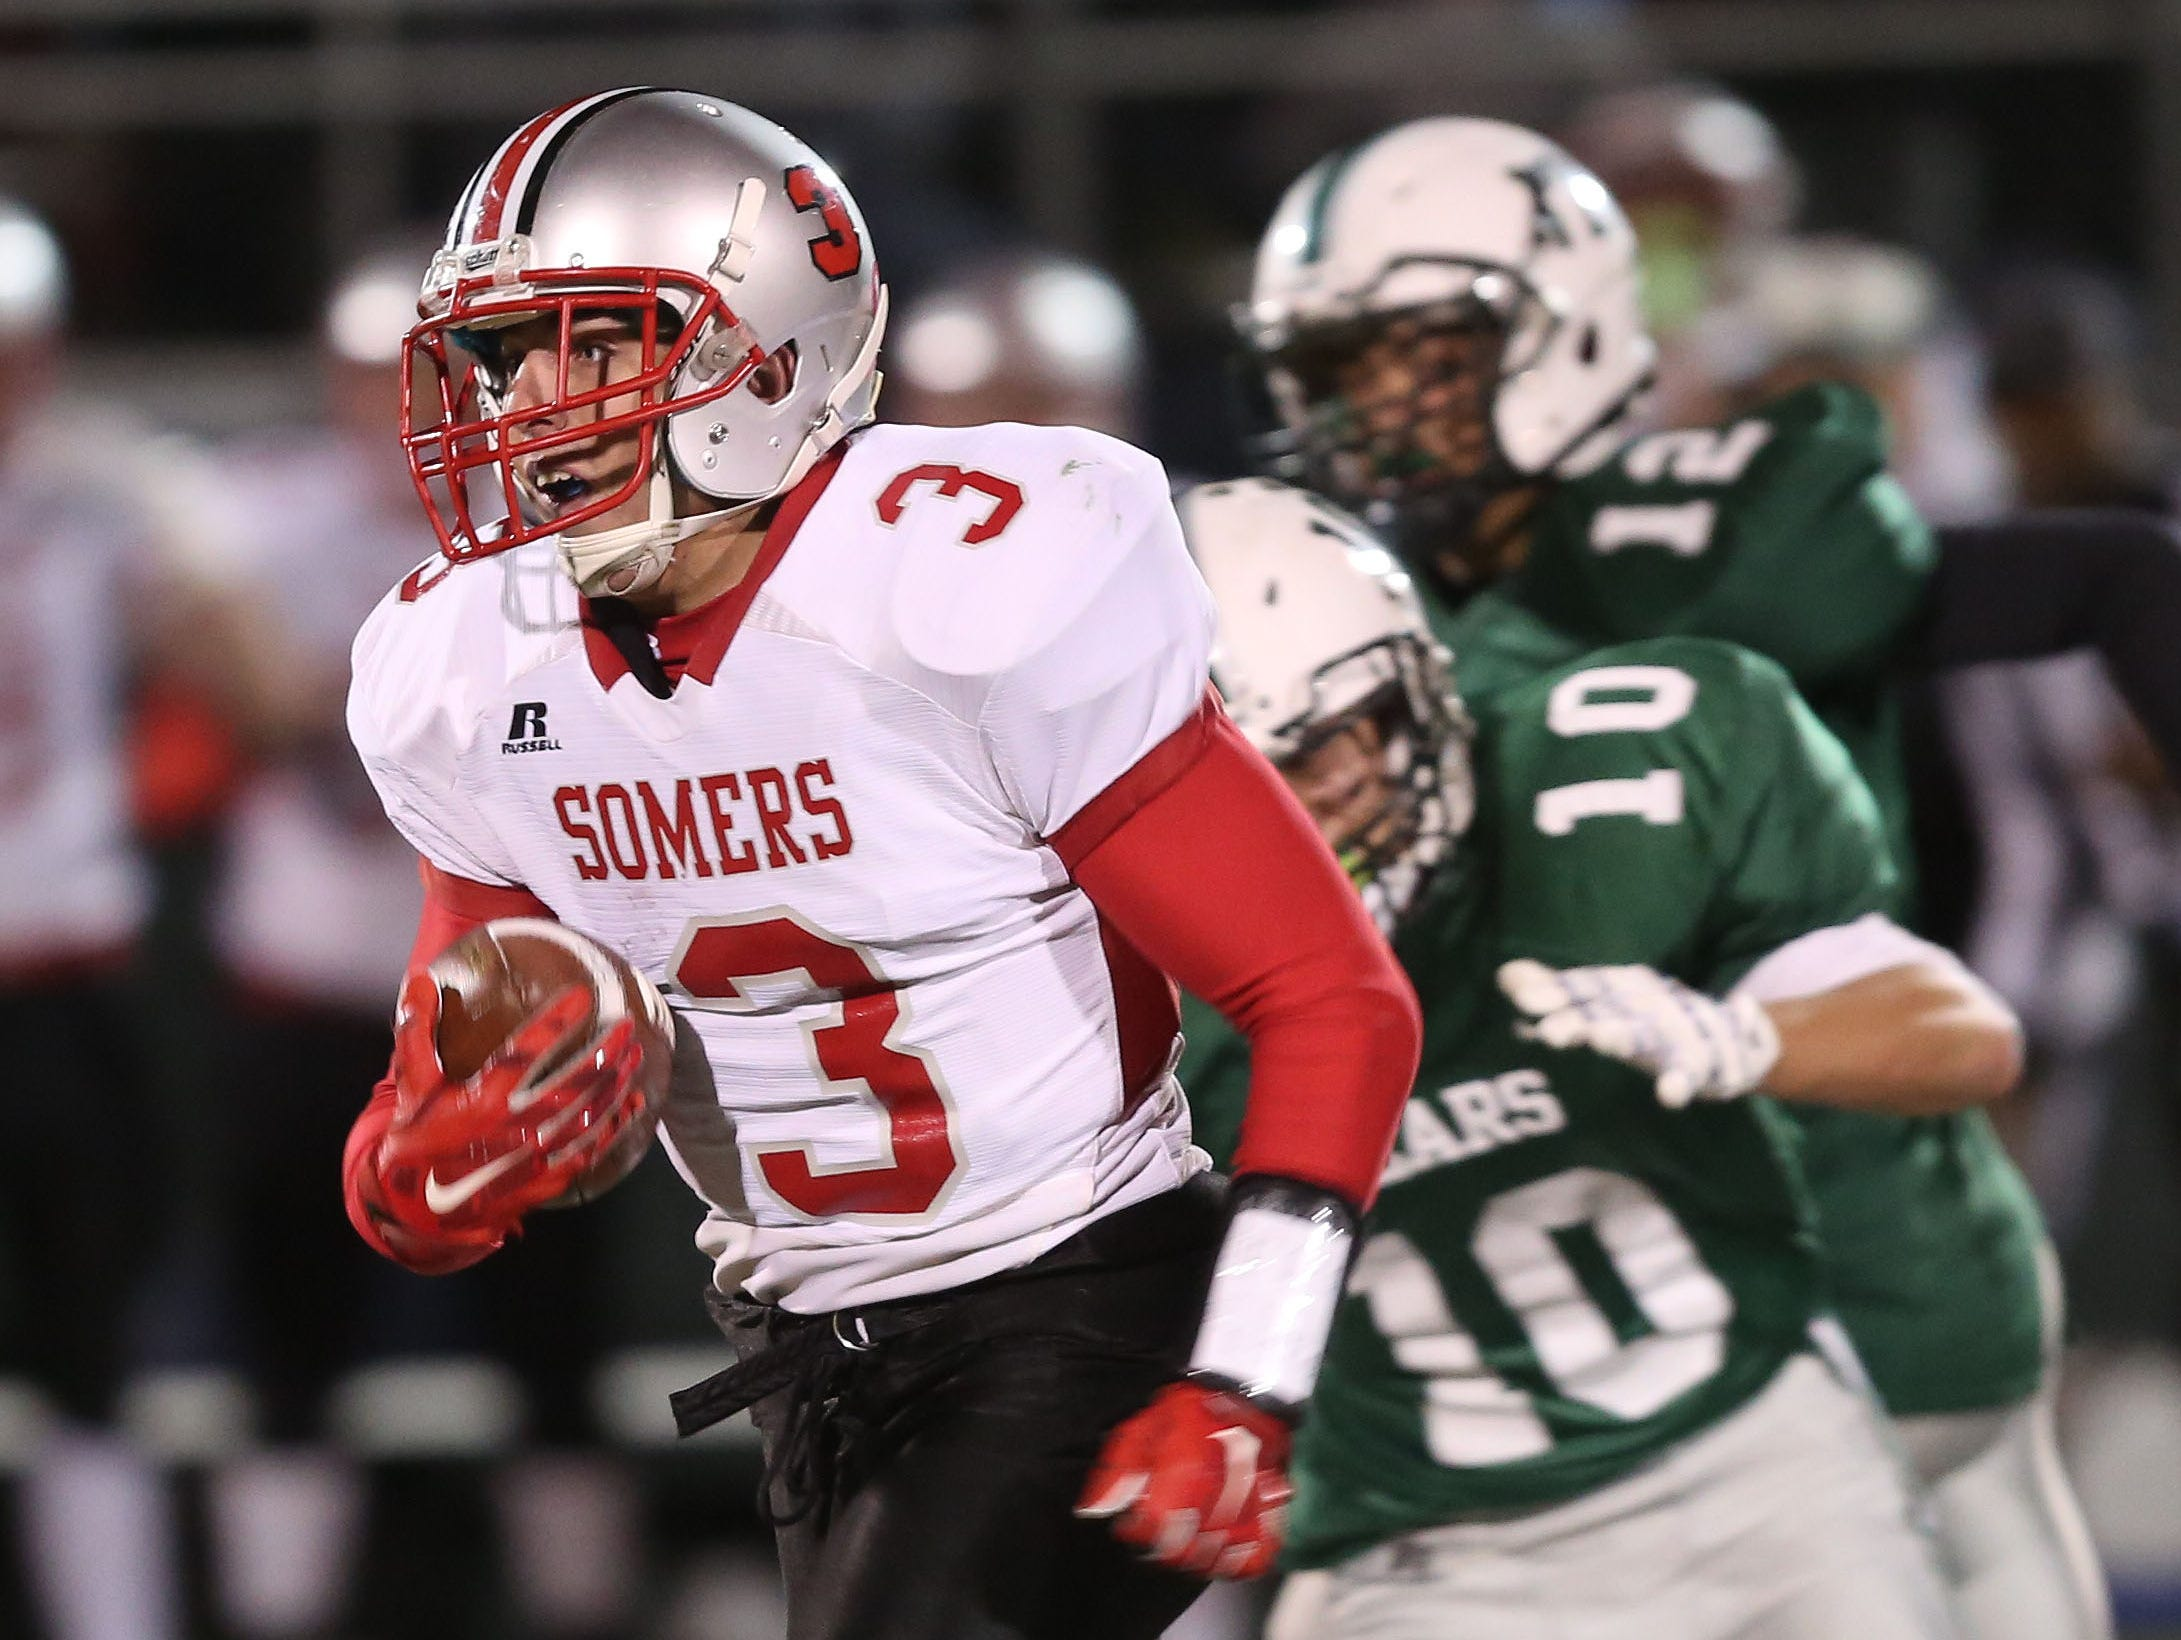 Somers' Matthew Pires (3) breaks away from Brewster's Rob Peifer (10) on a first half touchdown run during the Section 1 Class A semifinals at Brewster High School Oct. 28, 2016.